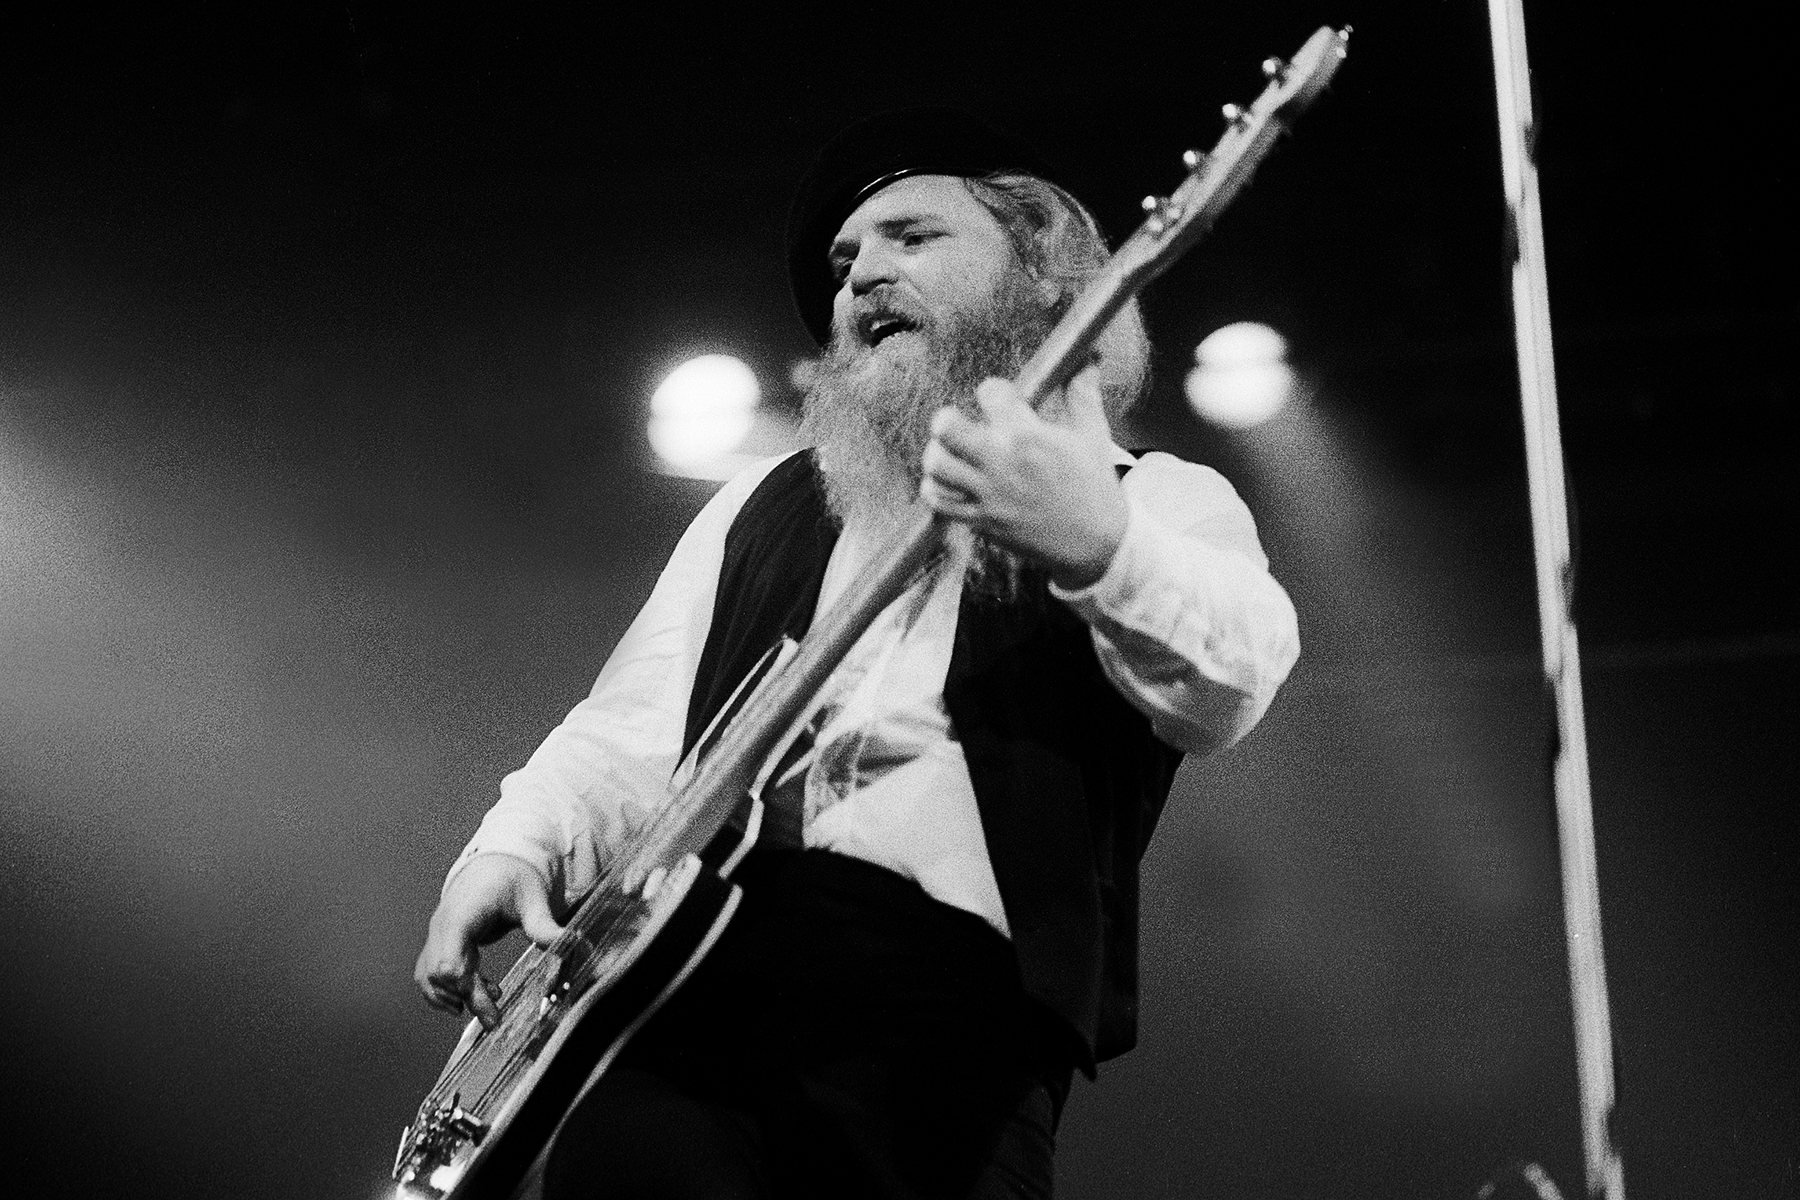 American Rock musician Dusty Hill, of the group ZZ Top, performs onstage at the Aragon Ballroom, Chicago, Illinois, March 14, 1980. (Photo by Paul Natkin/Getty Images)